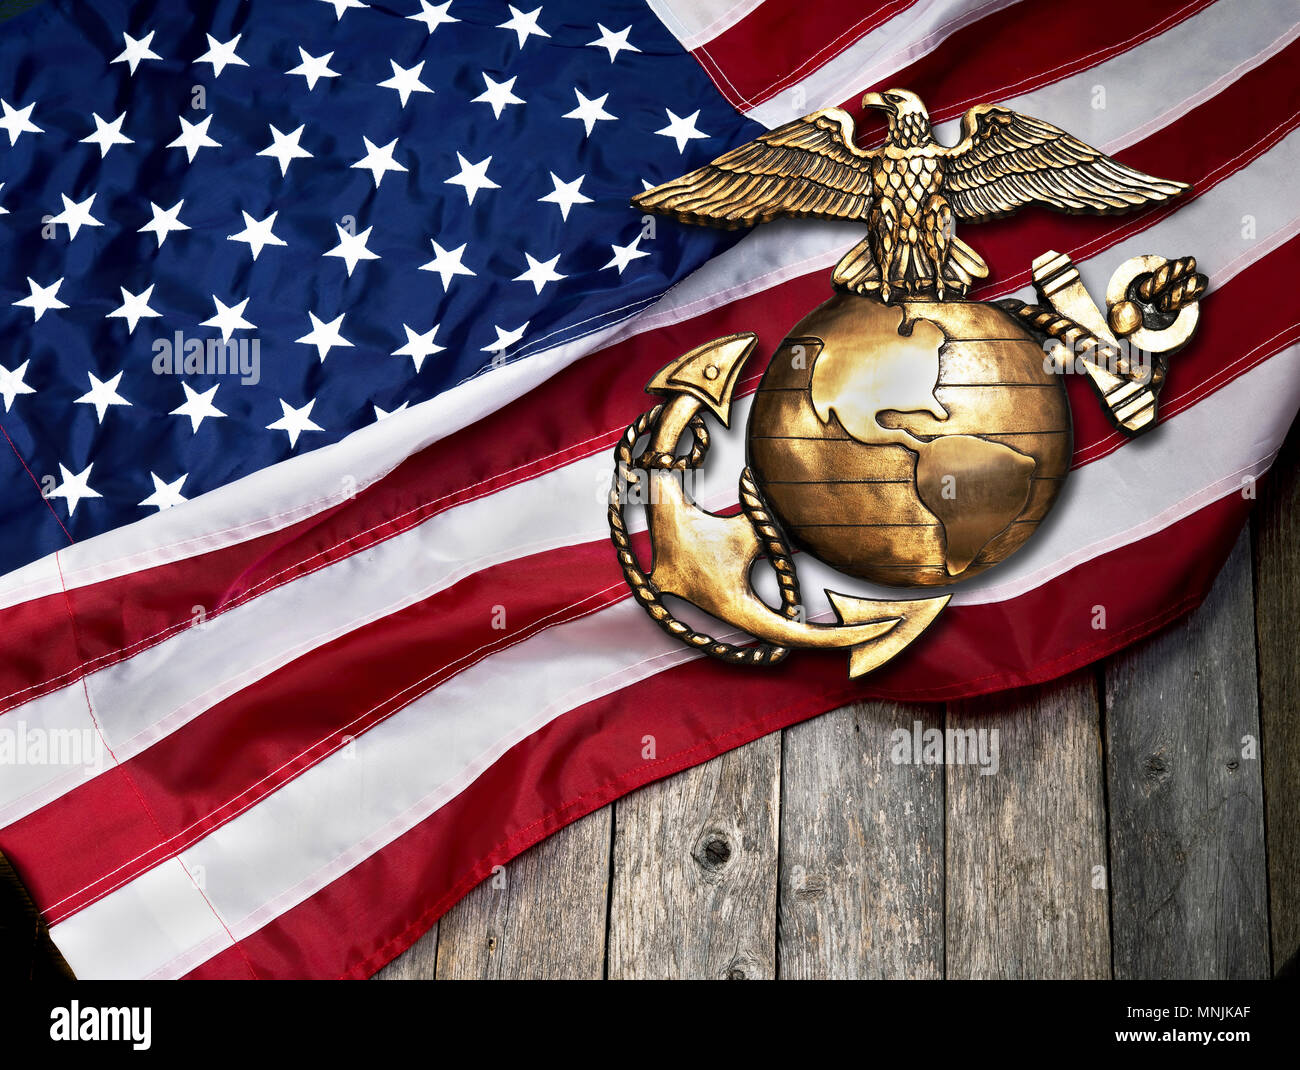 Marine eagle, globe and anchor with American flag background. Stock Photo